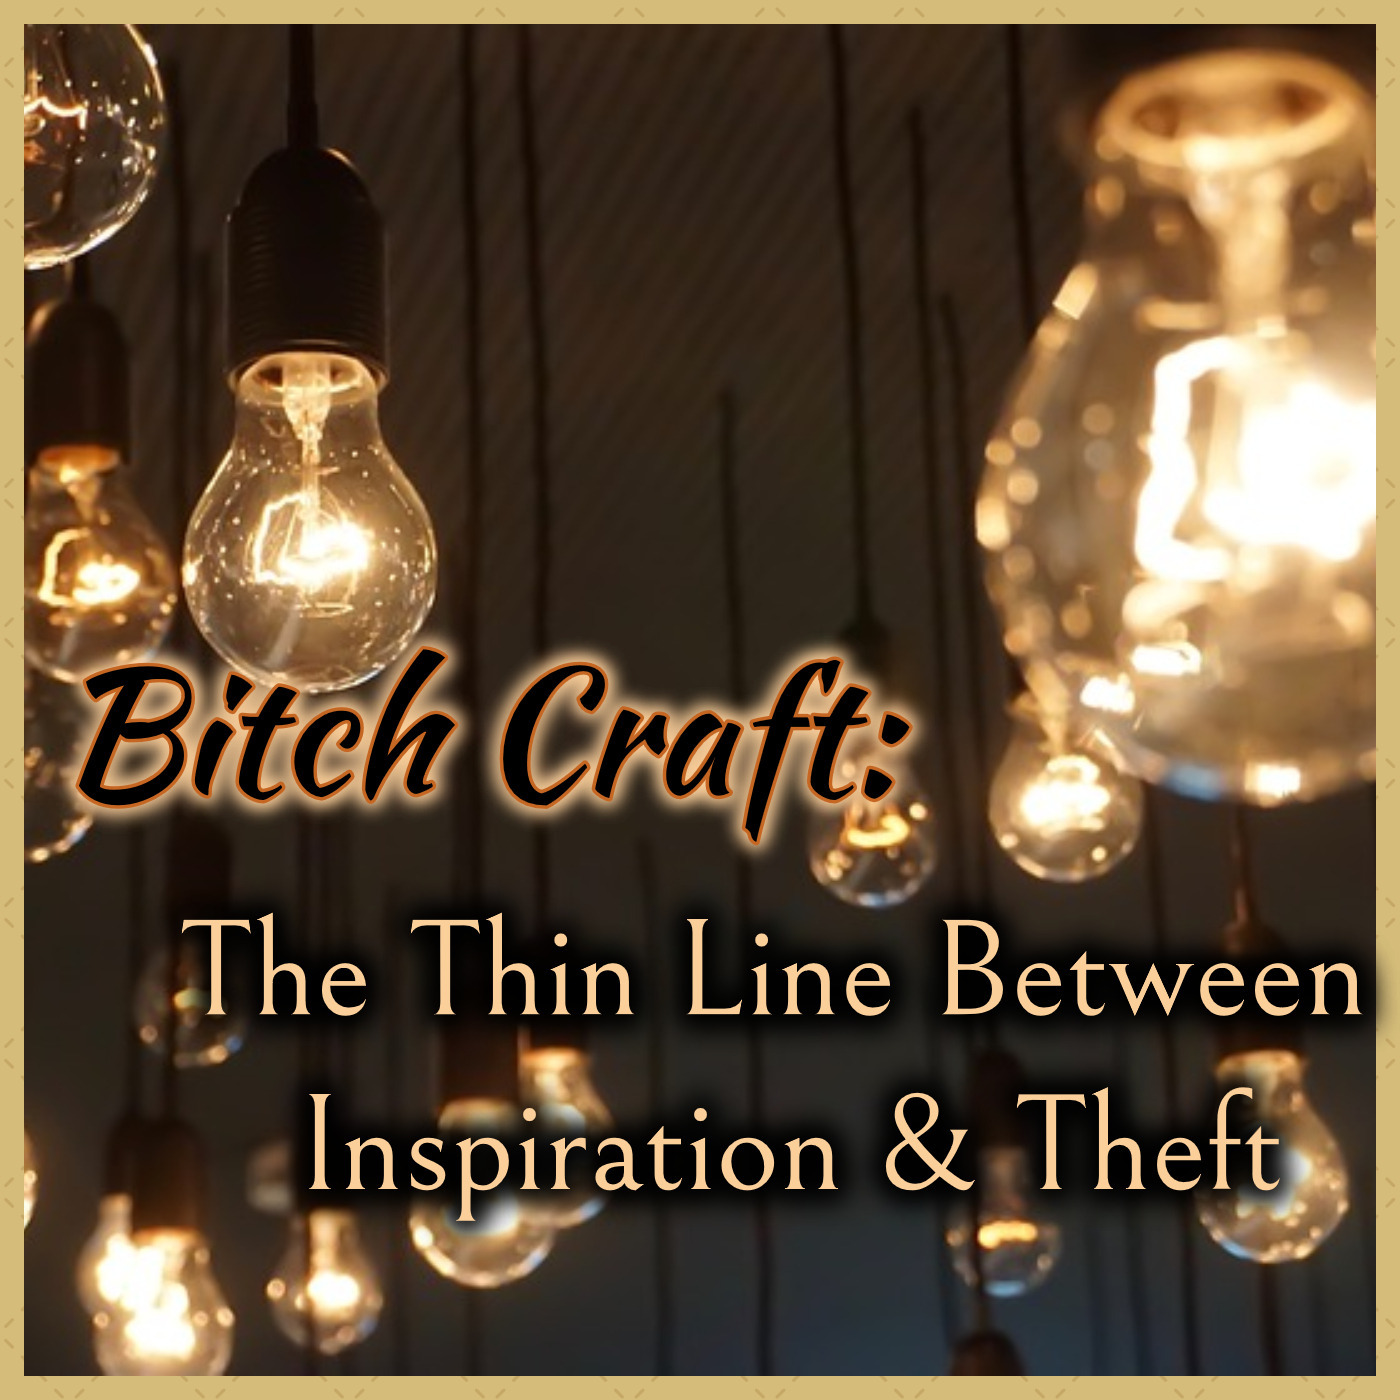 Bitch Craft-The Thin Line Between Inspiration & Theft